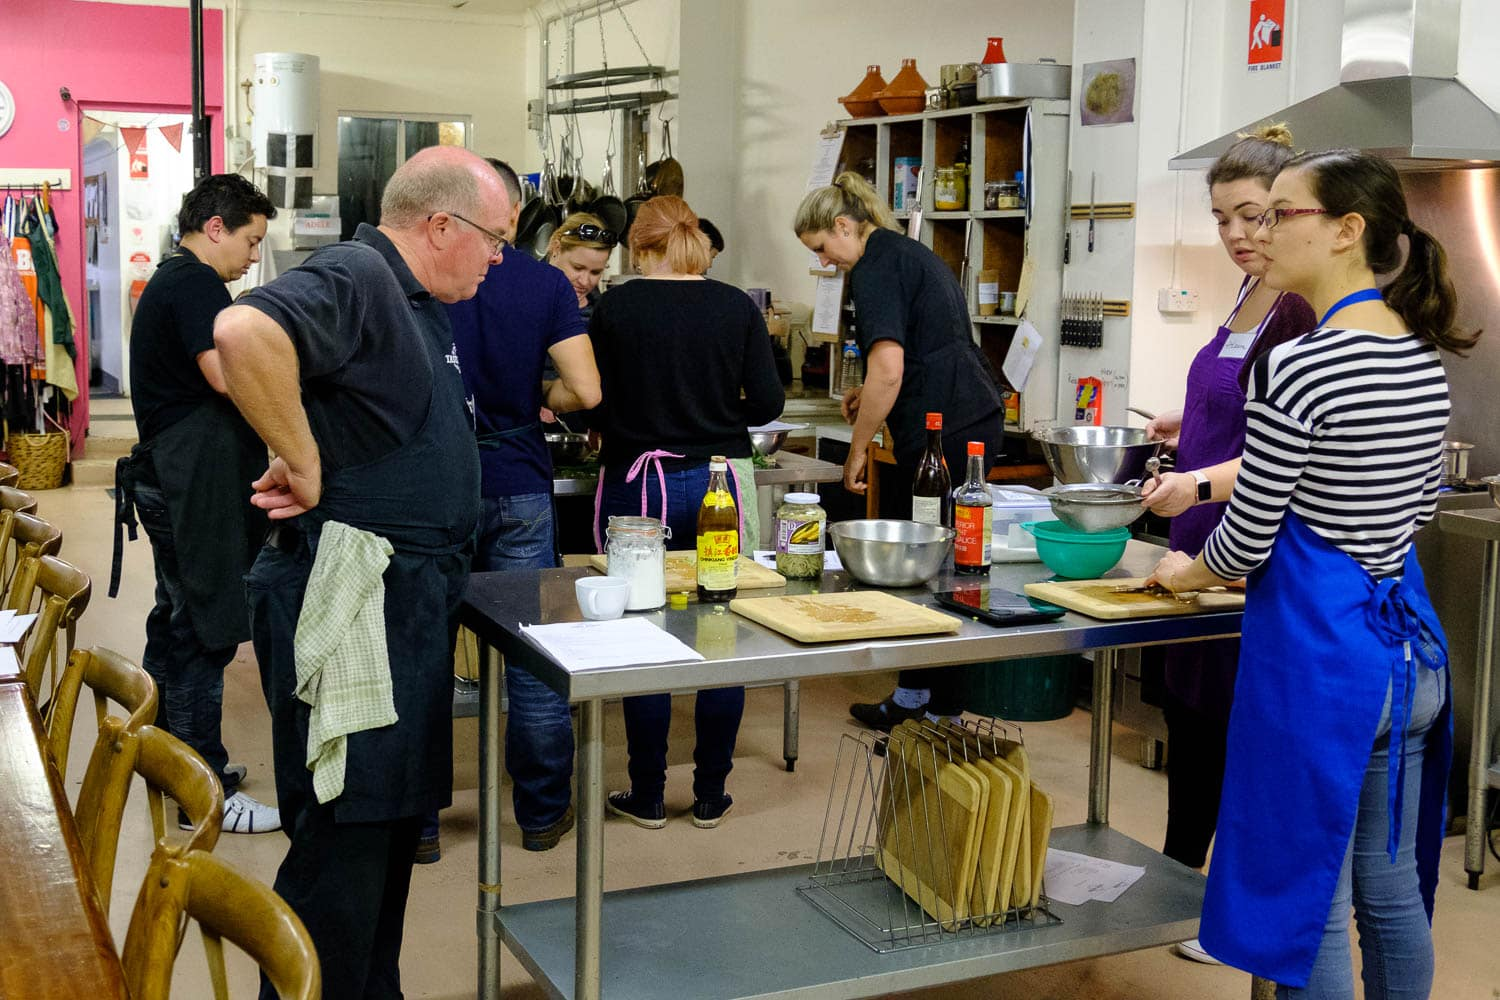 A Night of Food and Laughter at Taste Budds Cooking Studio